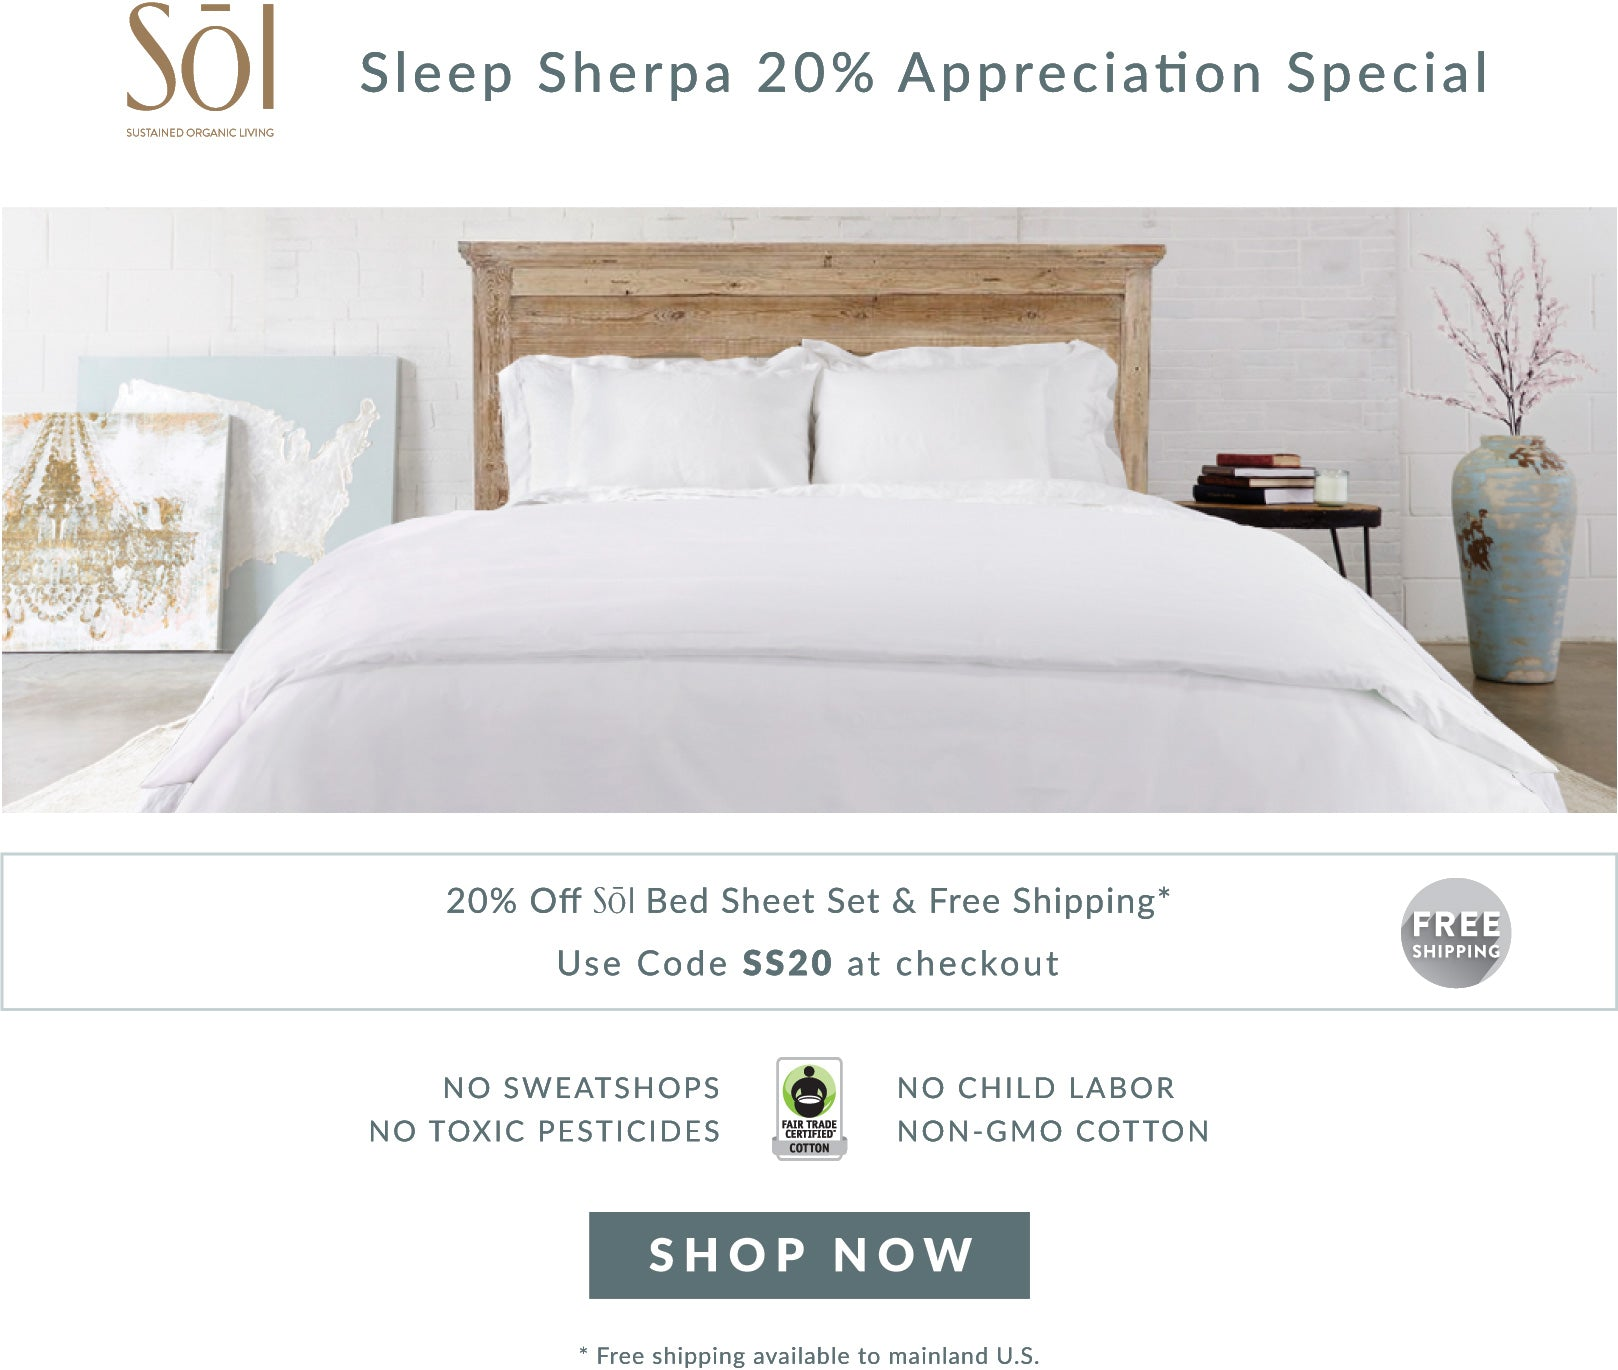 SOL Organics Certified Fair Trade Organic Cotton Bed Sheets